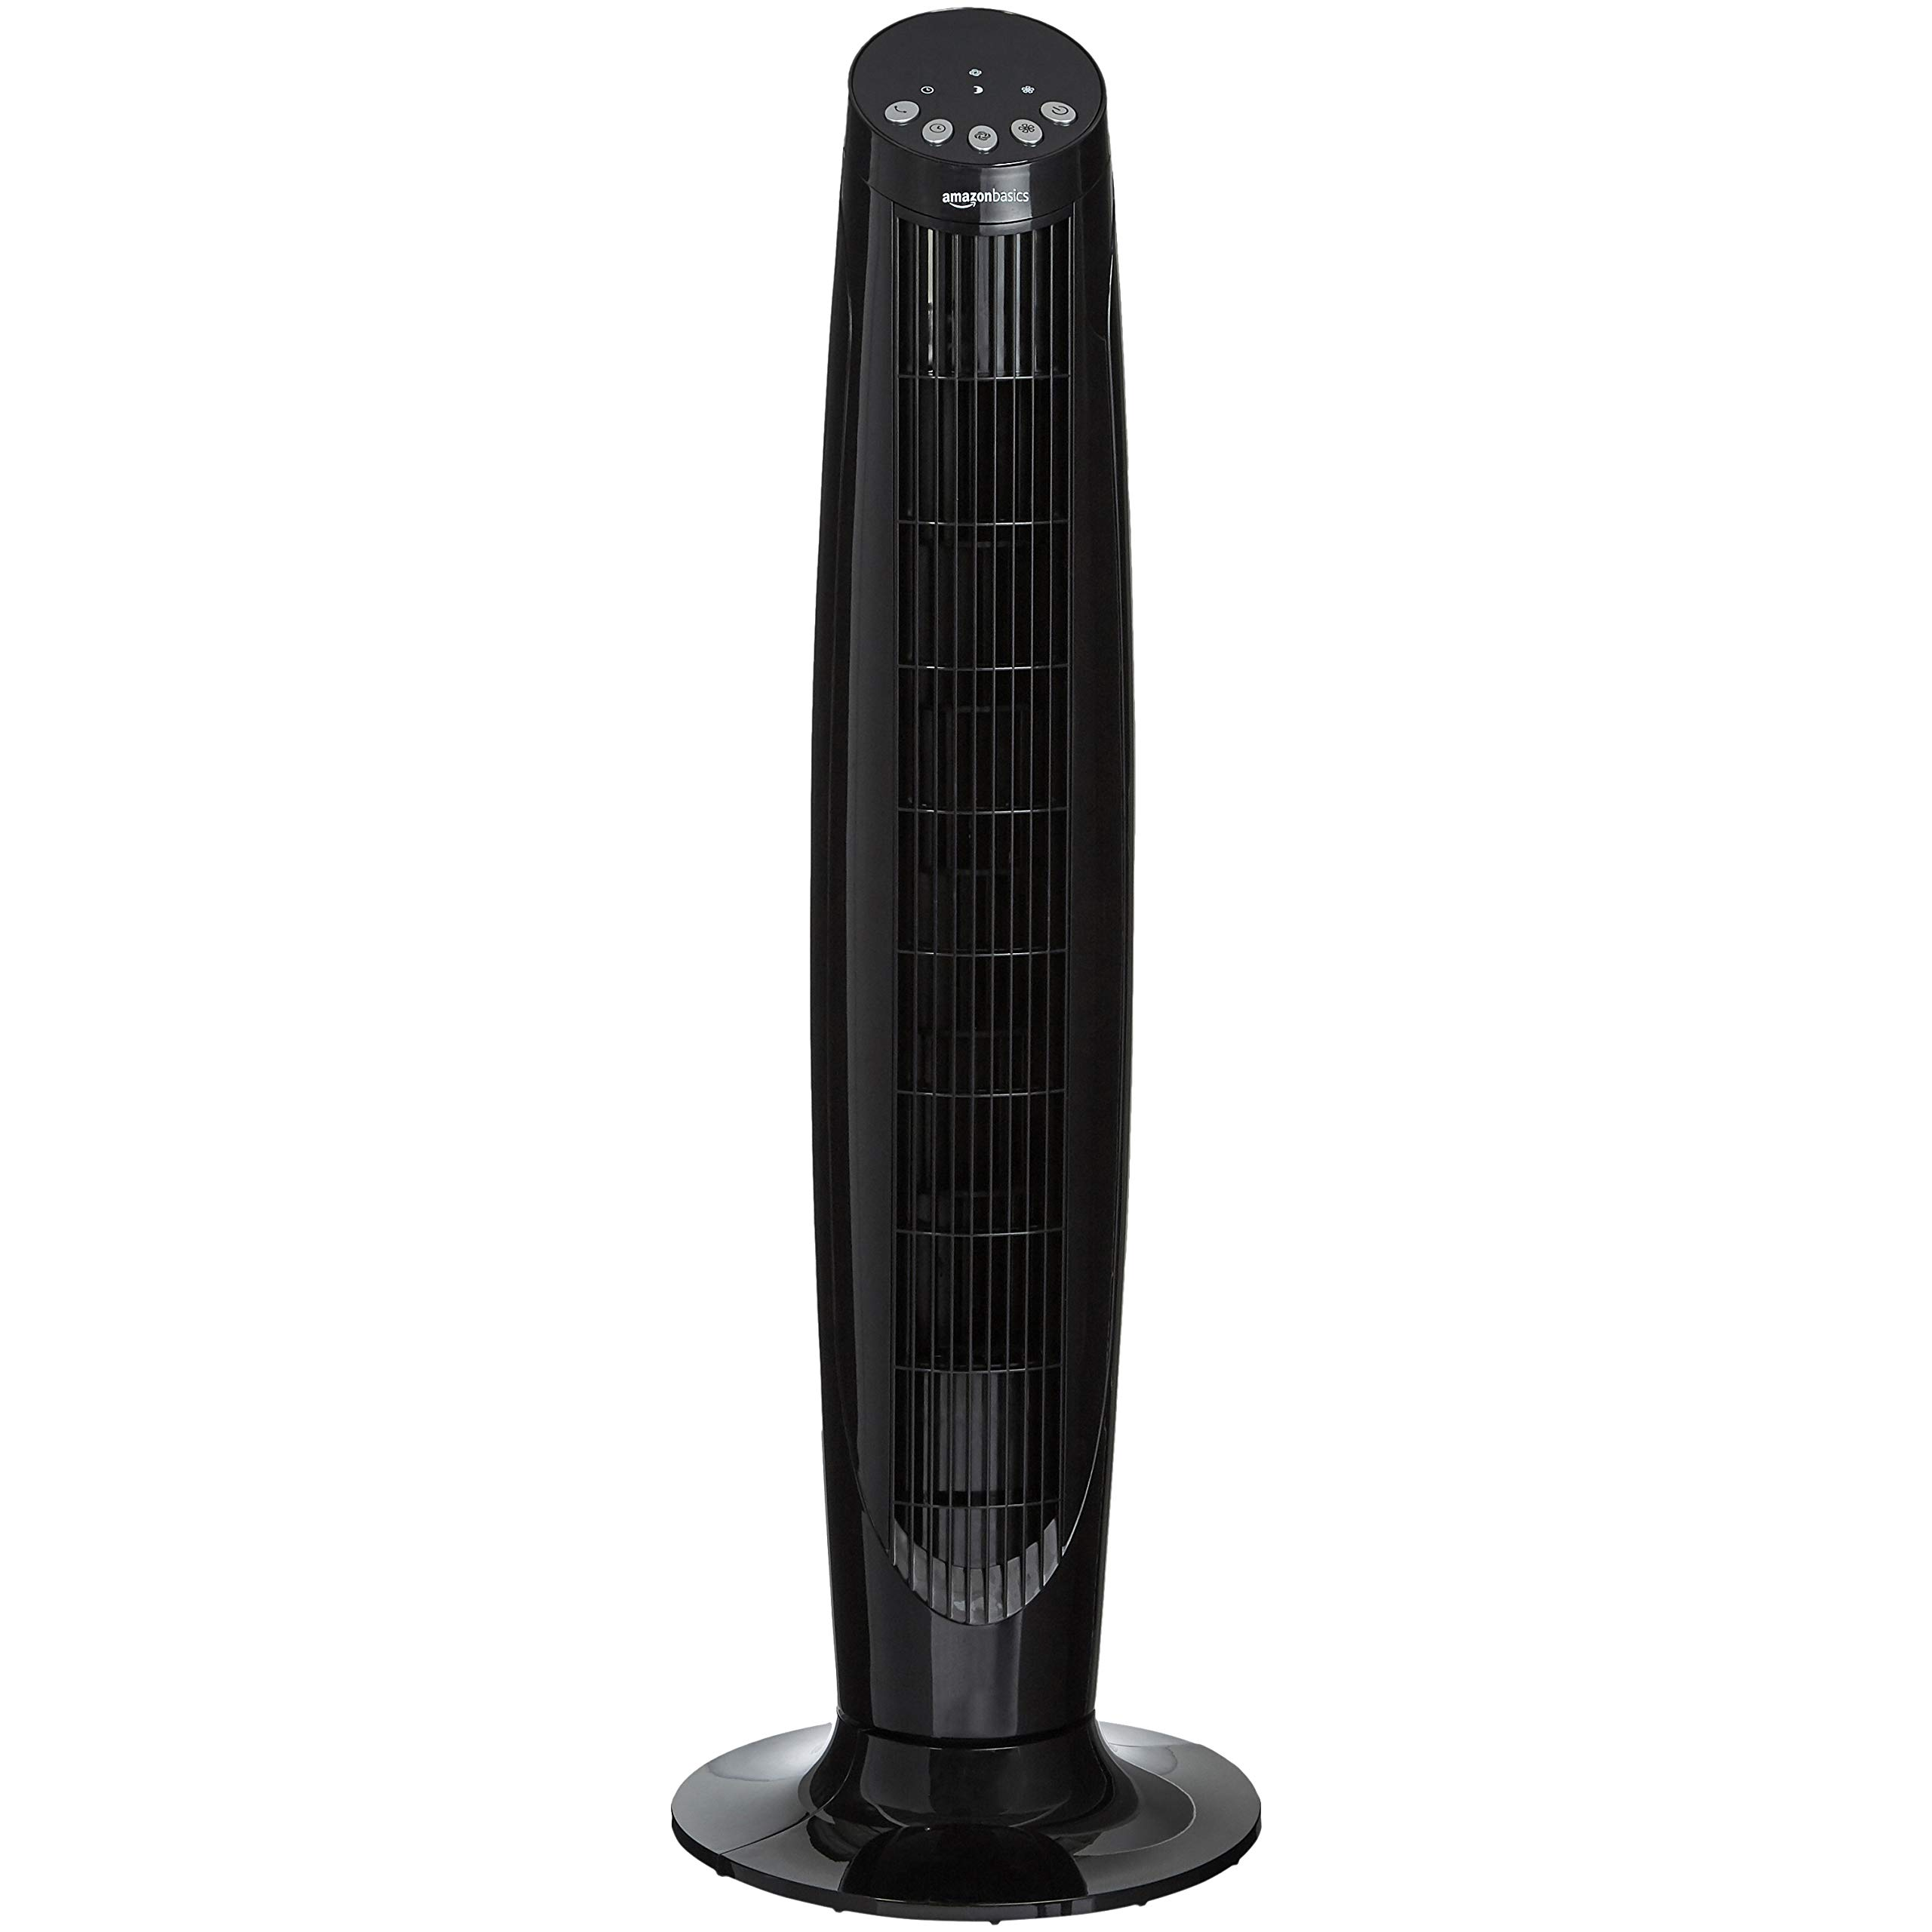 AmazonBasics Digital Oscillating Tower Fan